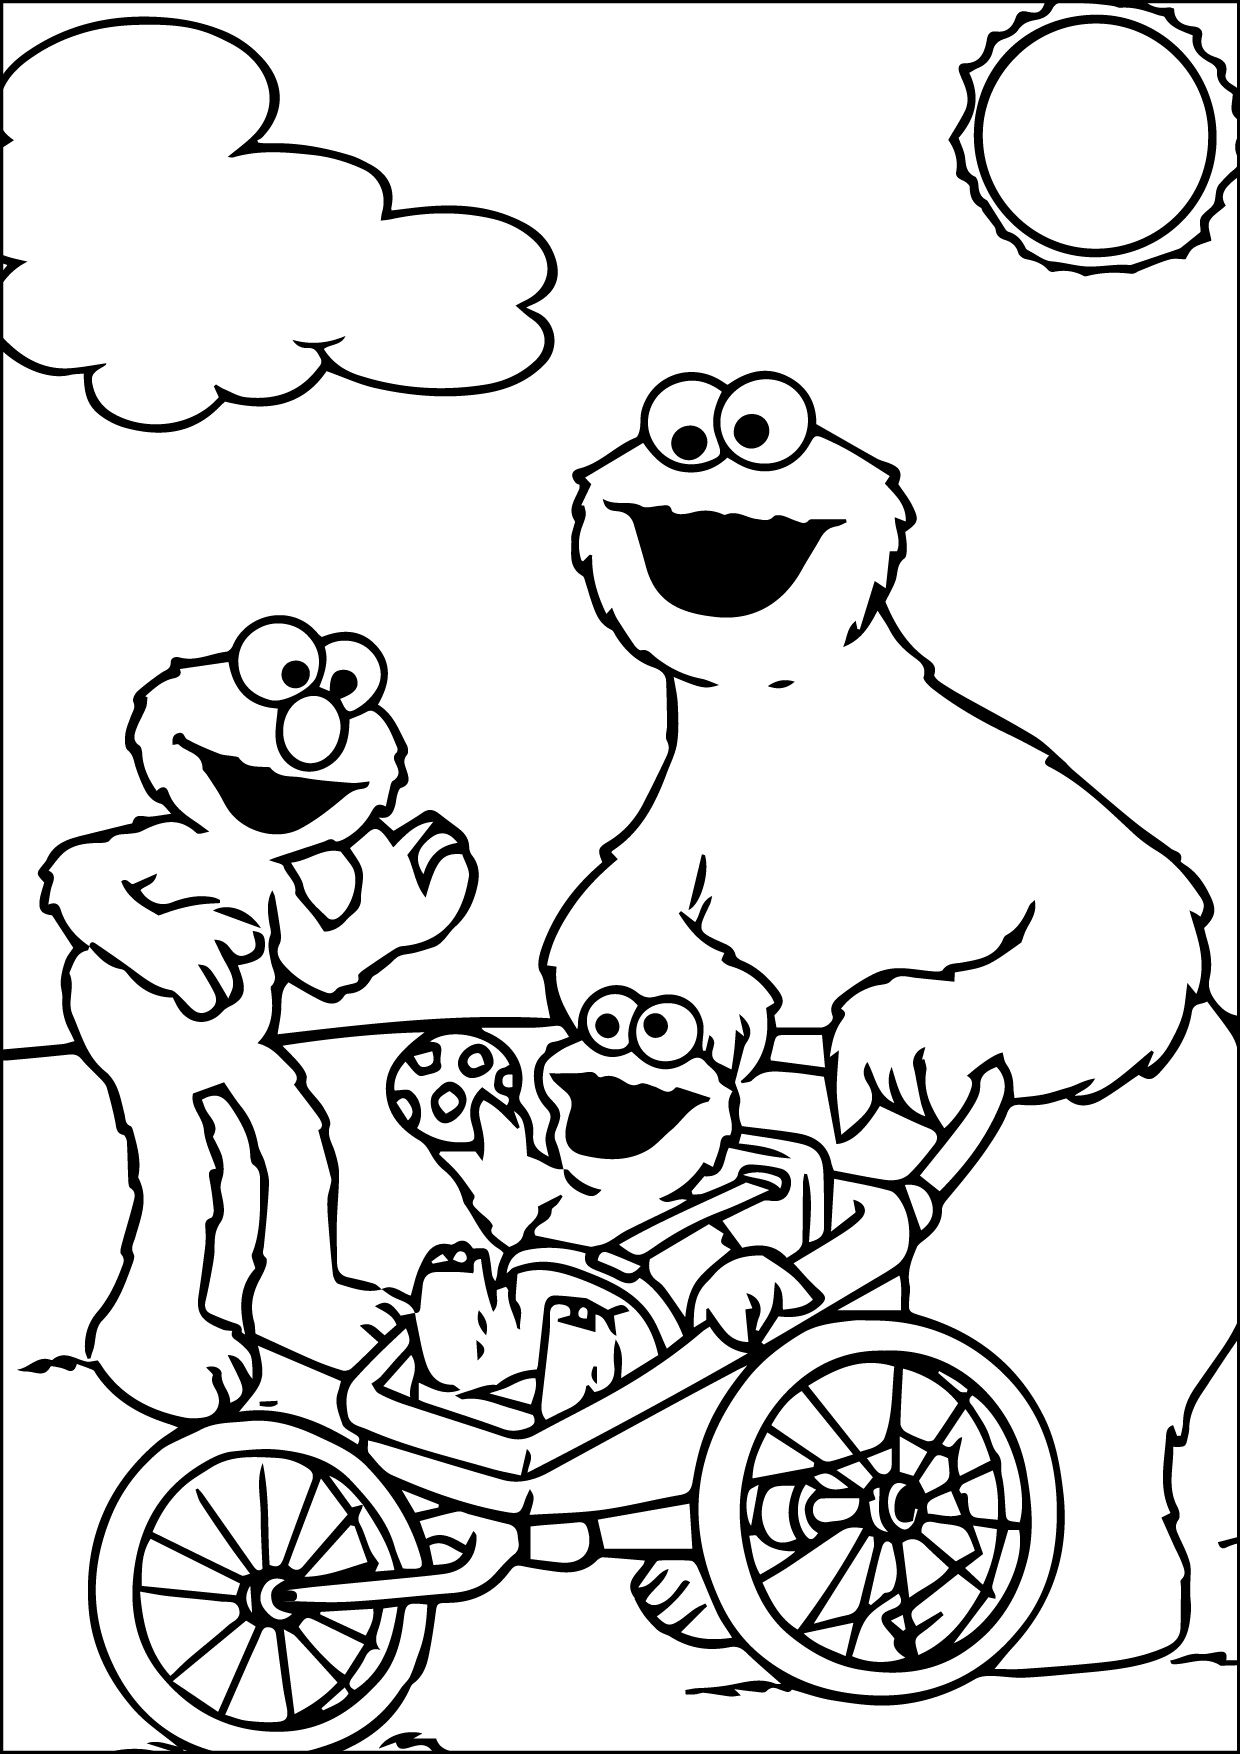 awesome coloring page 06102015_033812 Monster coloring